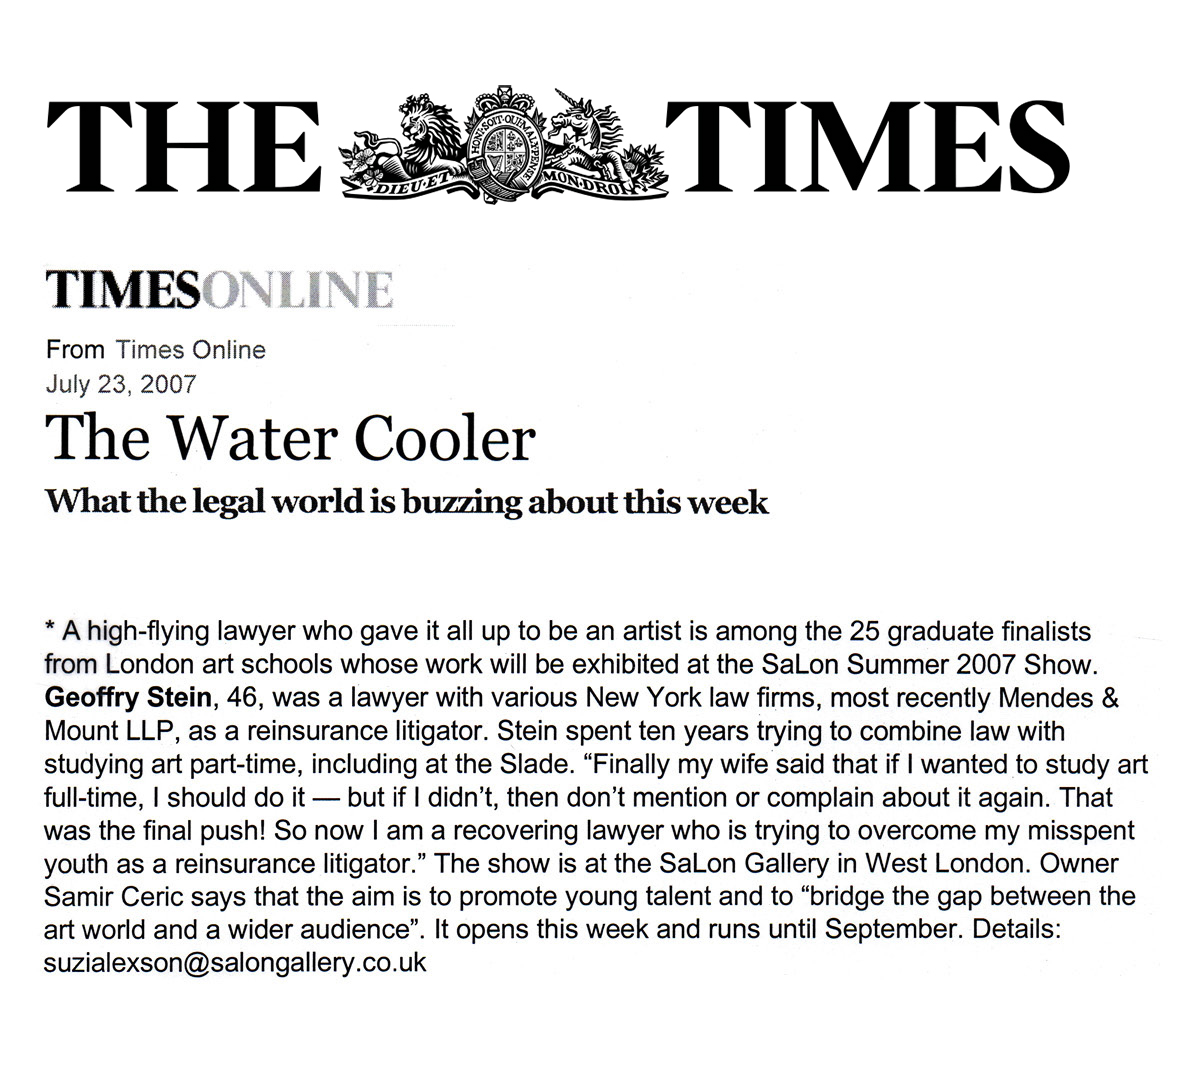 The Water CoolerLondon Times OnlineJuly 23, 2007 -